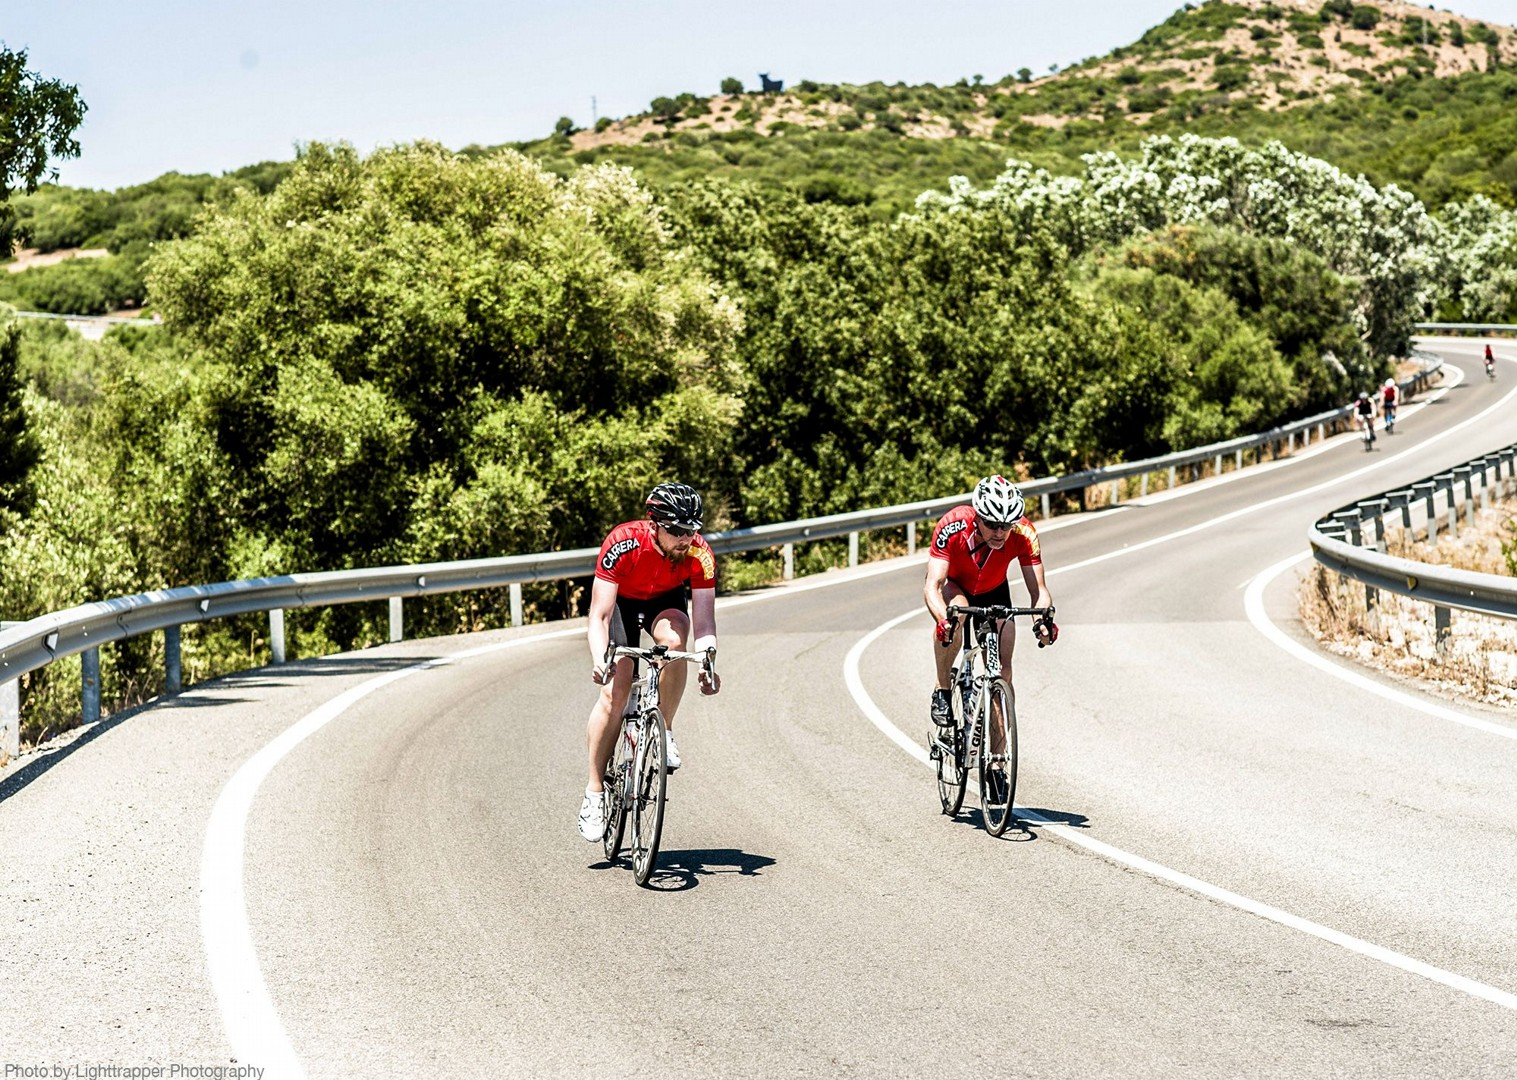 road-cycling-guided-tour-west-andalucia-sierras-skedaddle.jpg - Southern Spain - Andalucia - Los Pueblos Blancos - Road Cycling